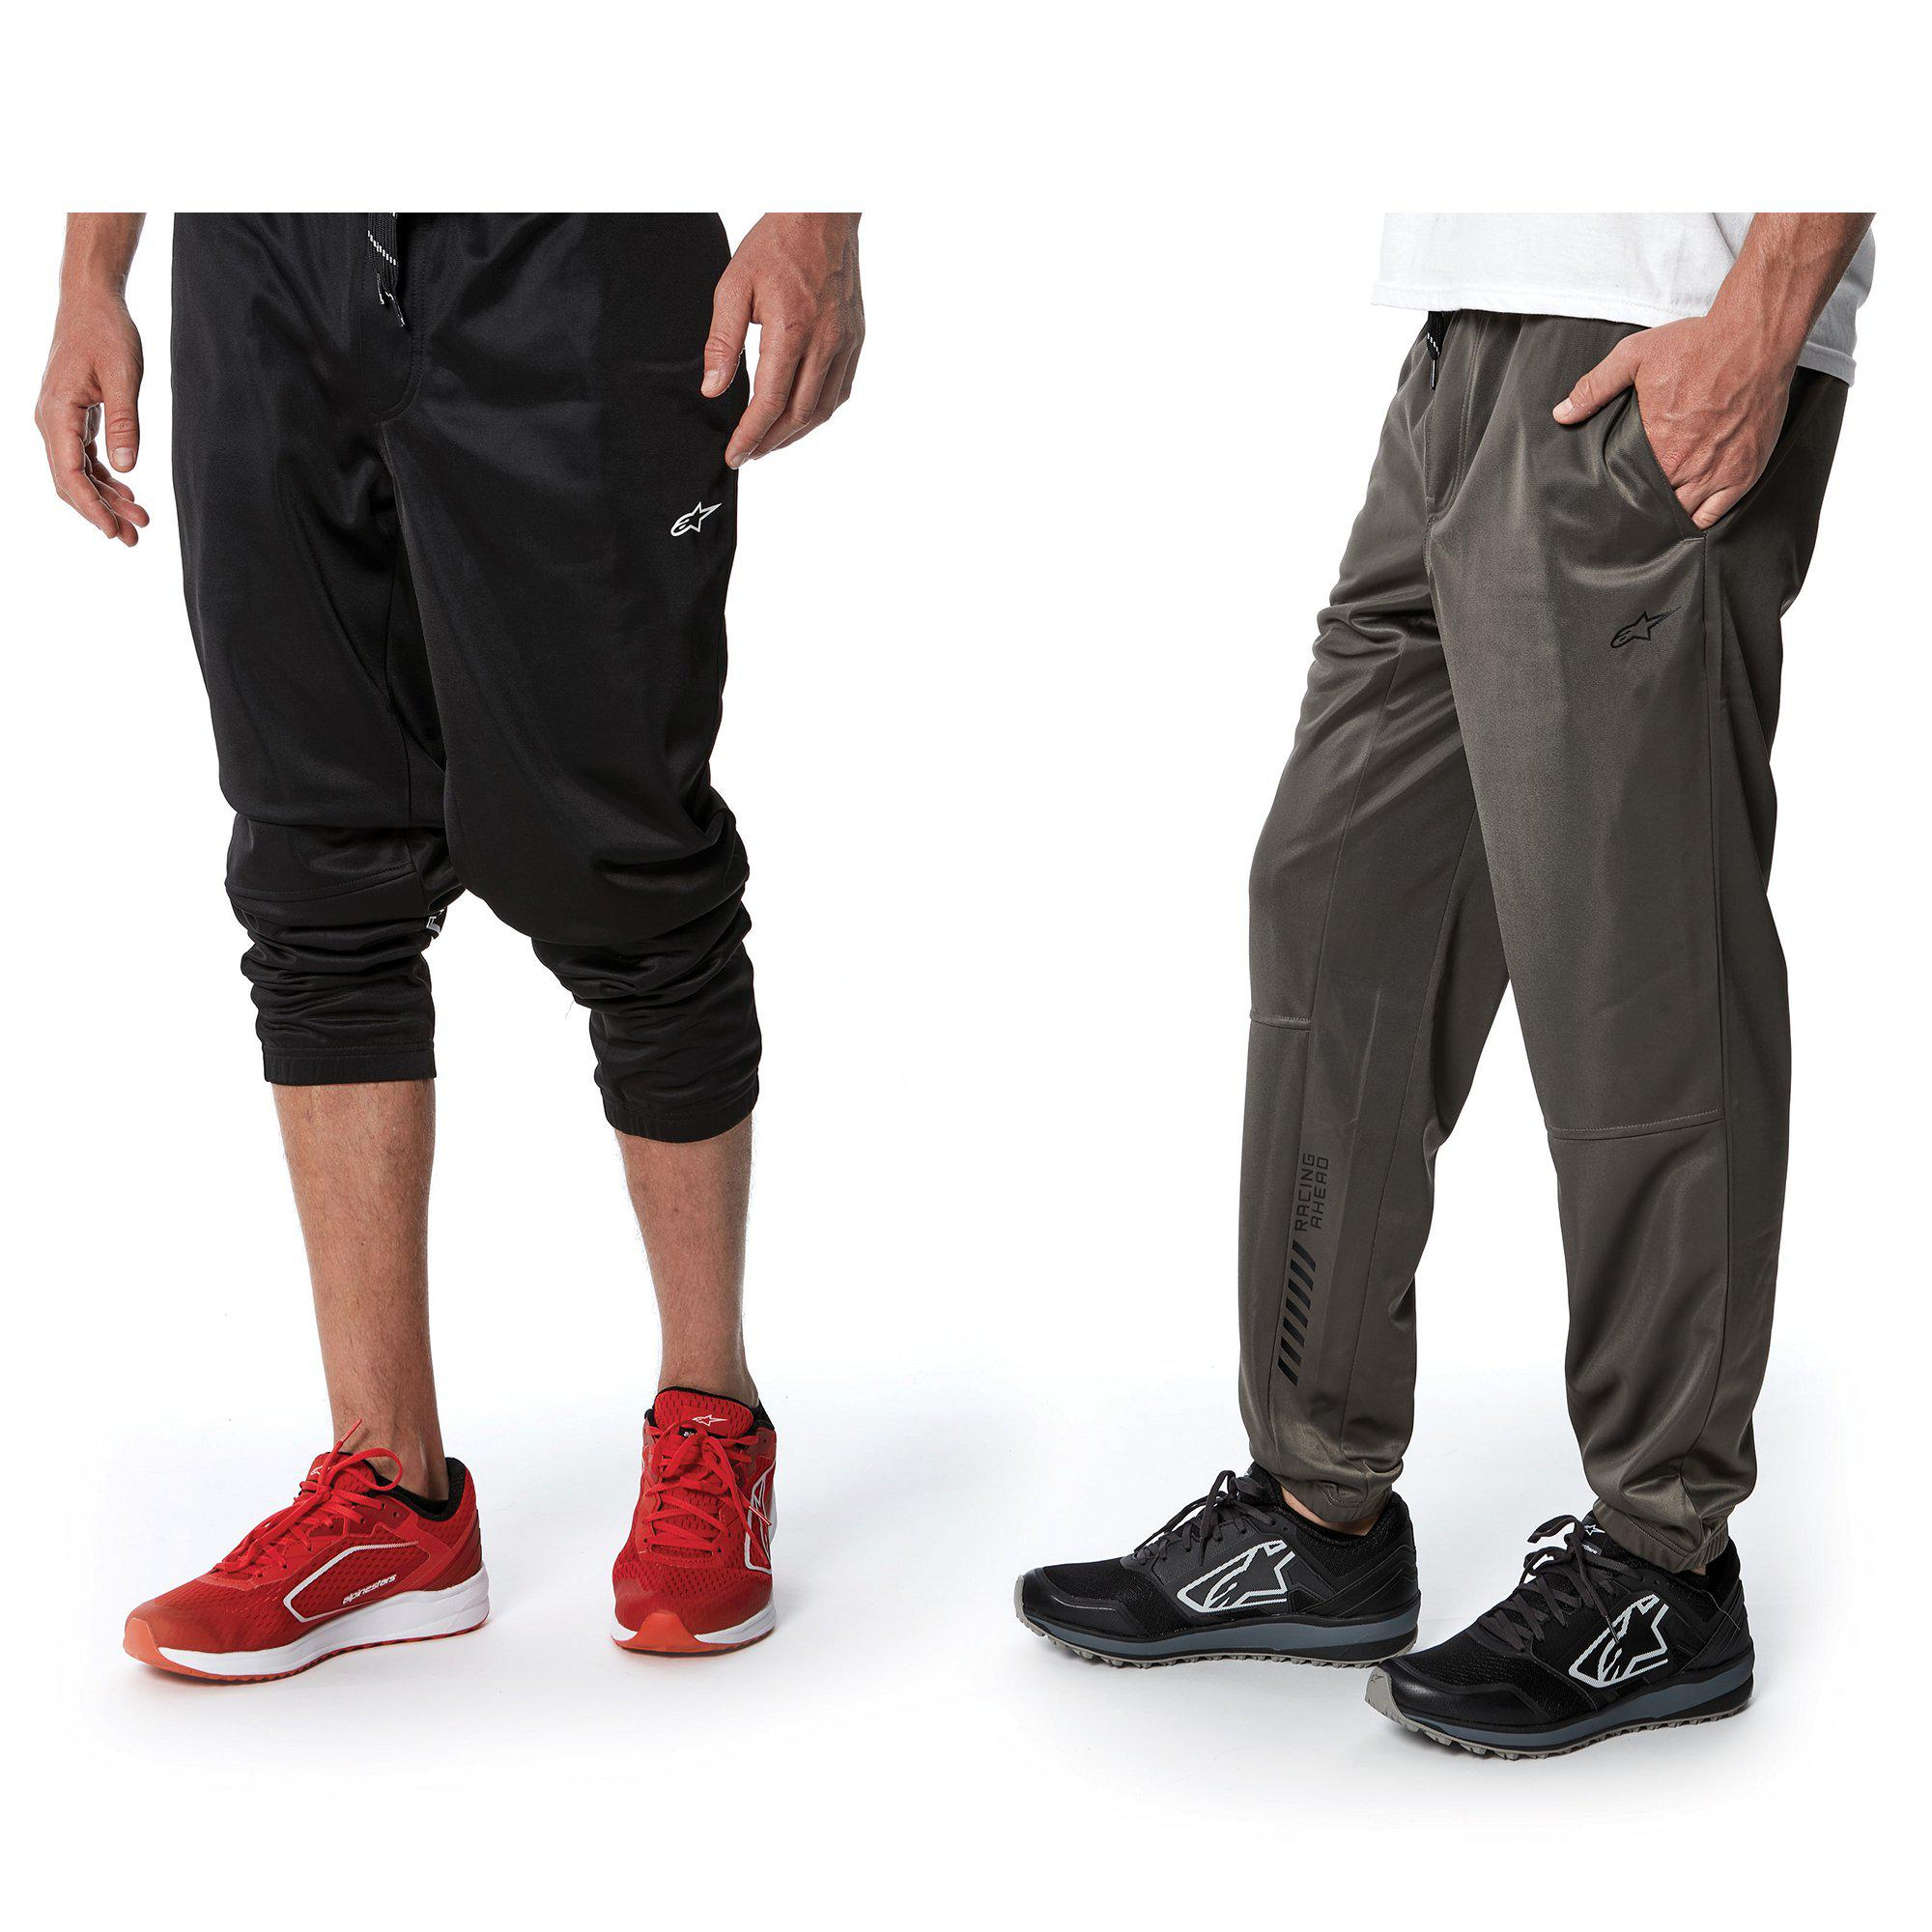 Sprint Trainer Pant